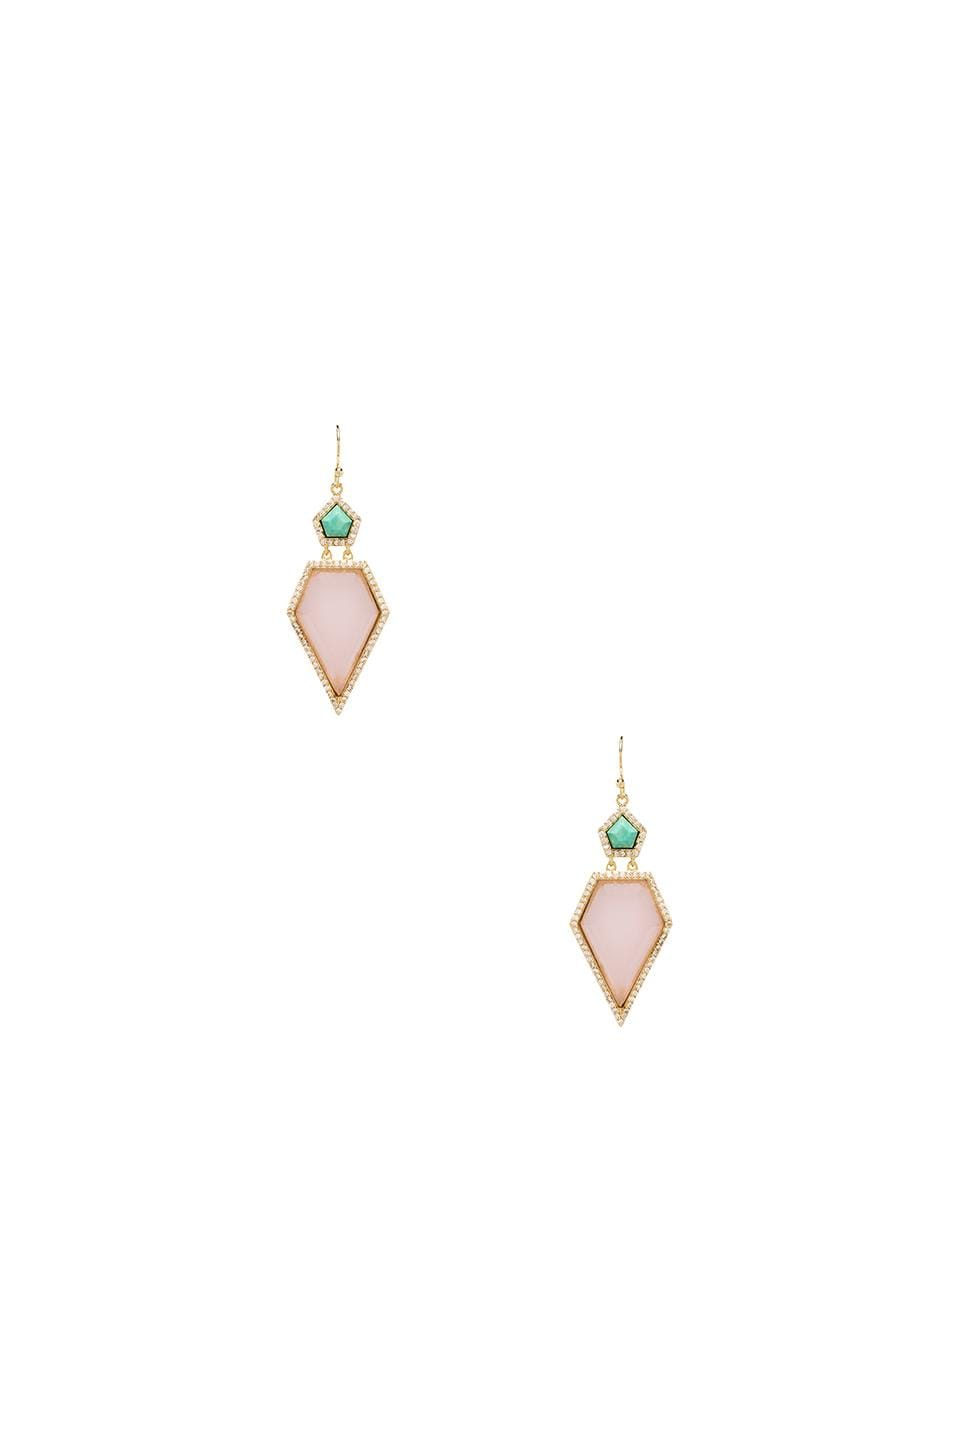 Melanie Auld Pave Double Pentagon Earrings in Turquoise & Pink Opal